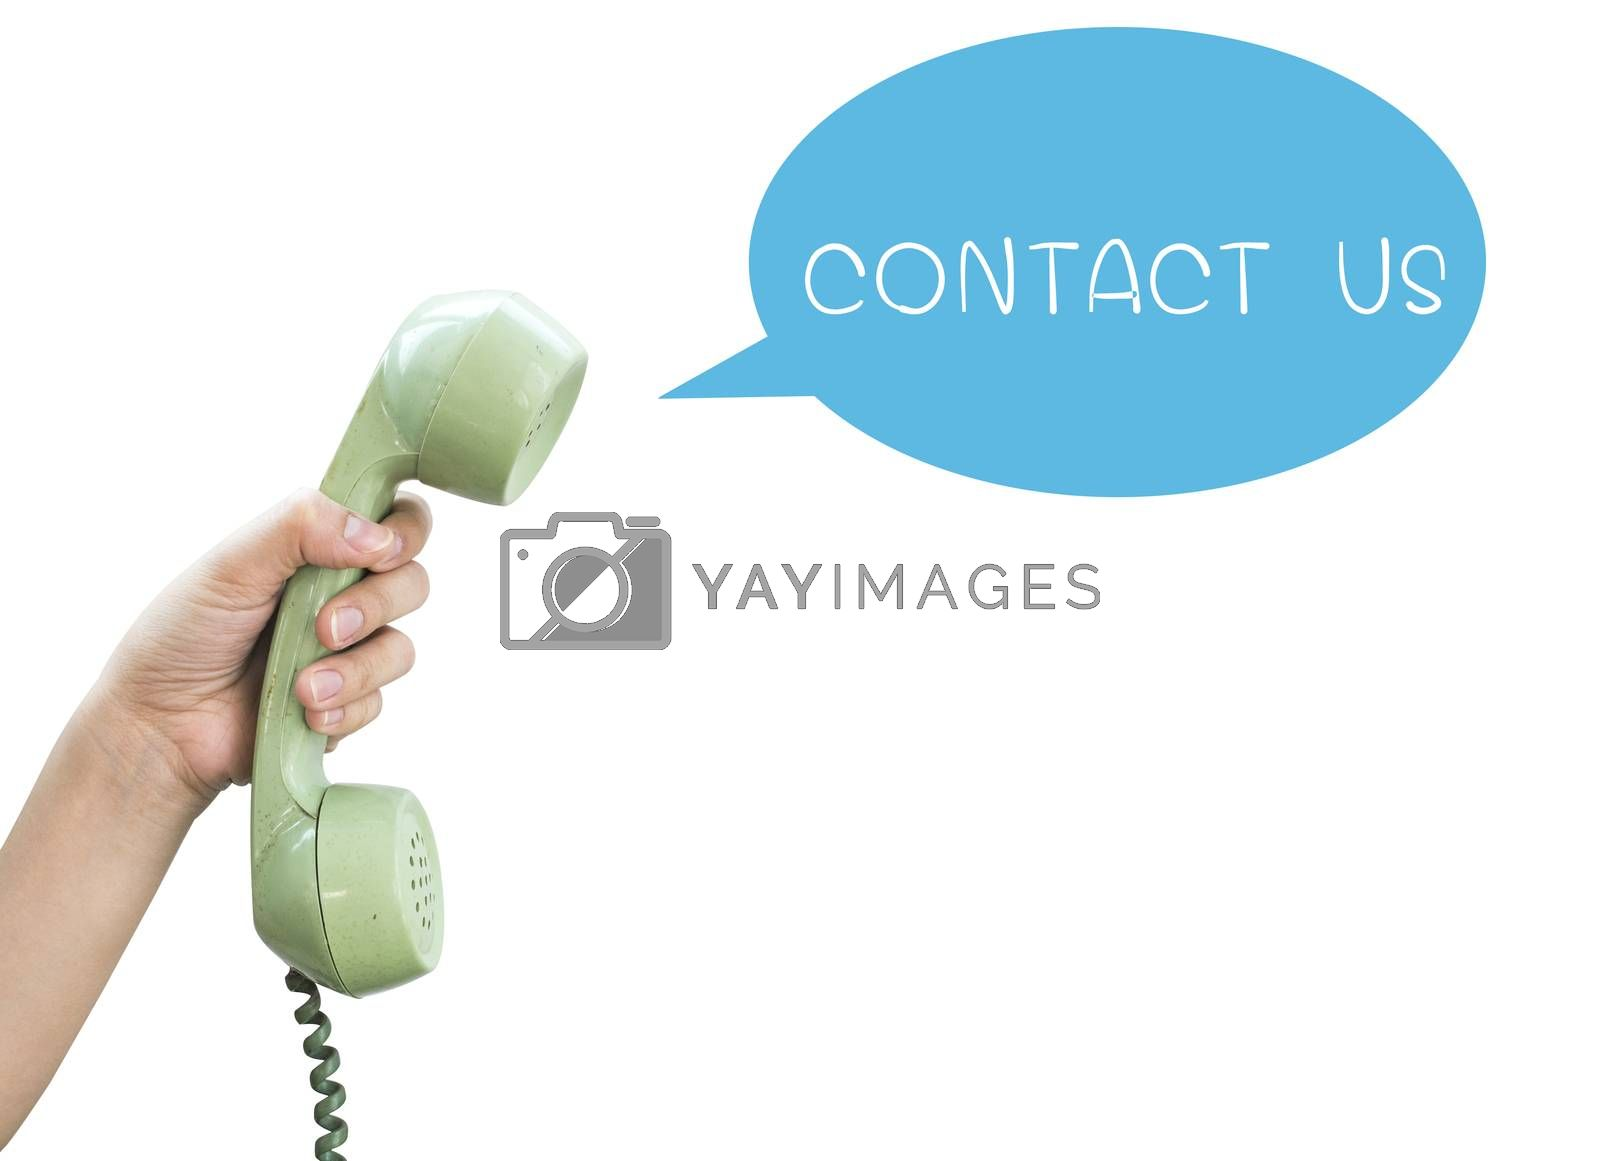 Contact Us. Hand hold vintage telephone isolated on white background